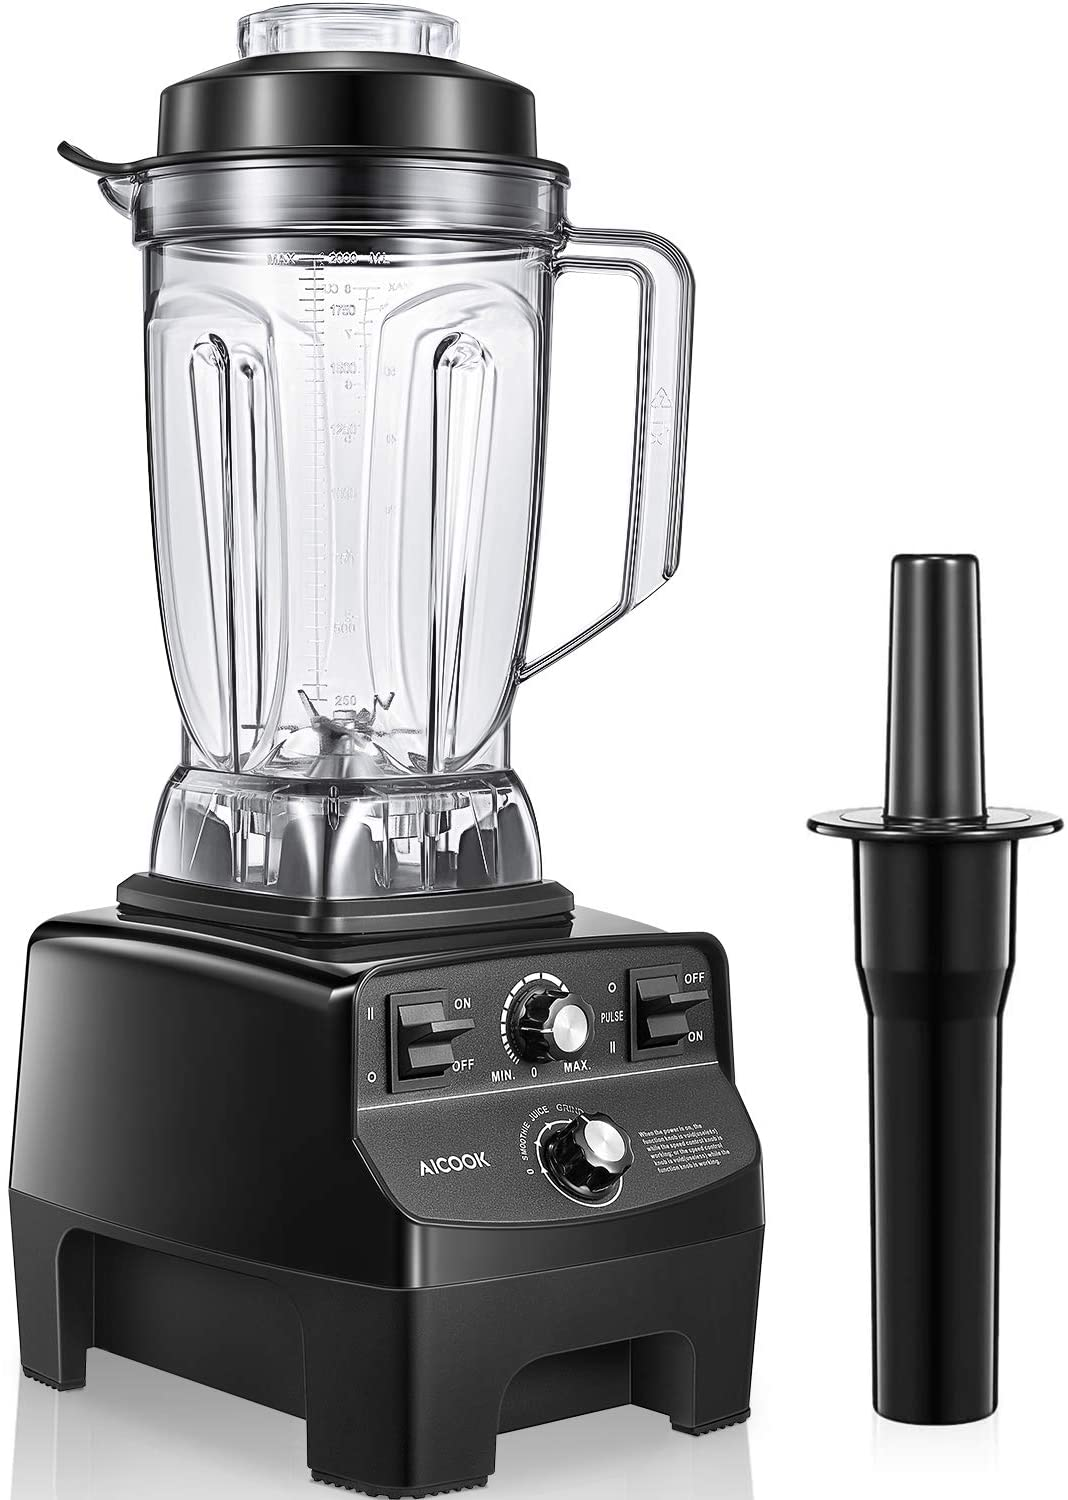 Alcook Professional Blender for Grinding Rice